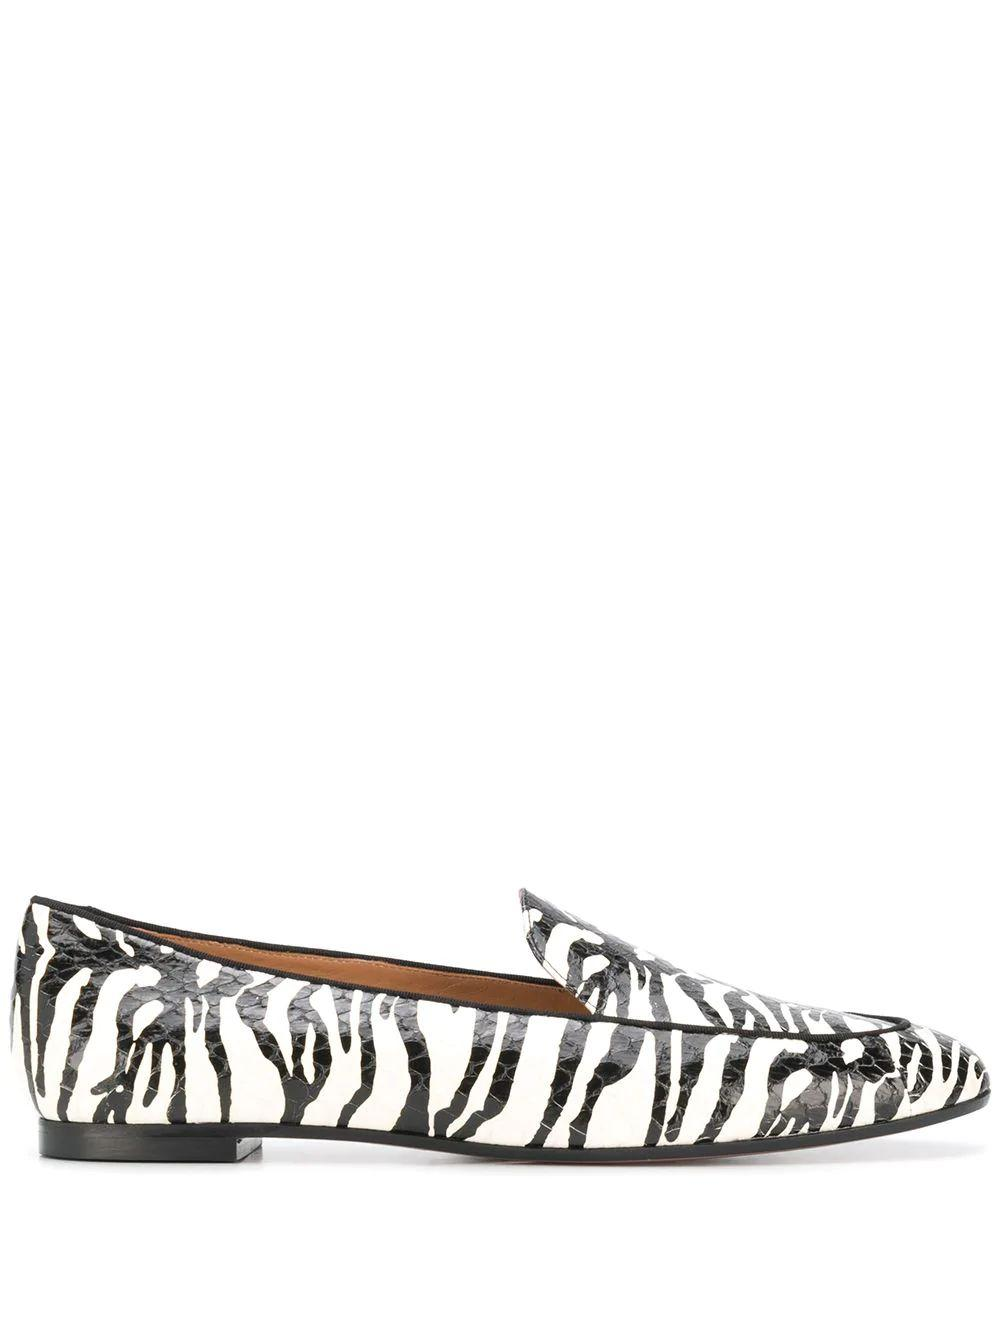 Purist Zebra Print Loafer